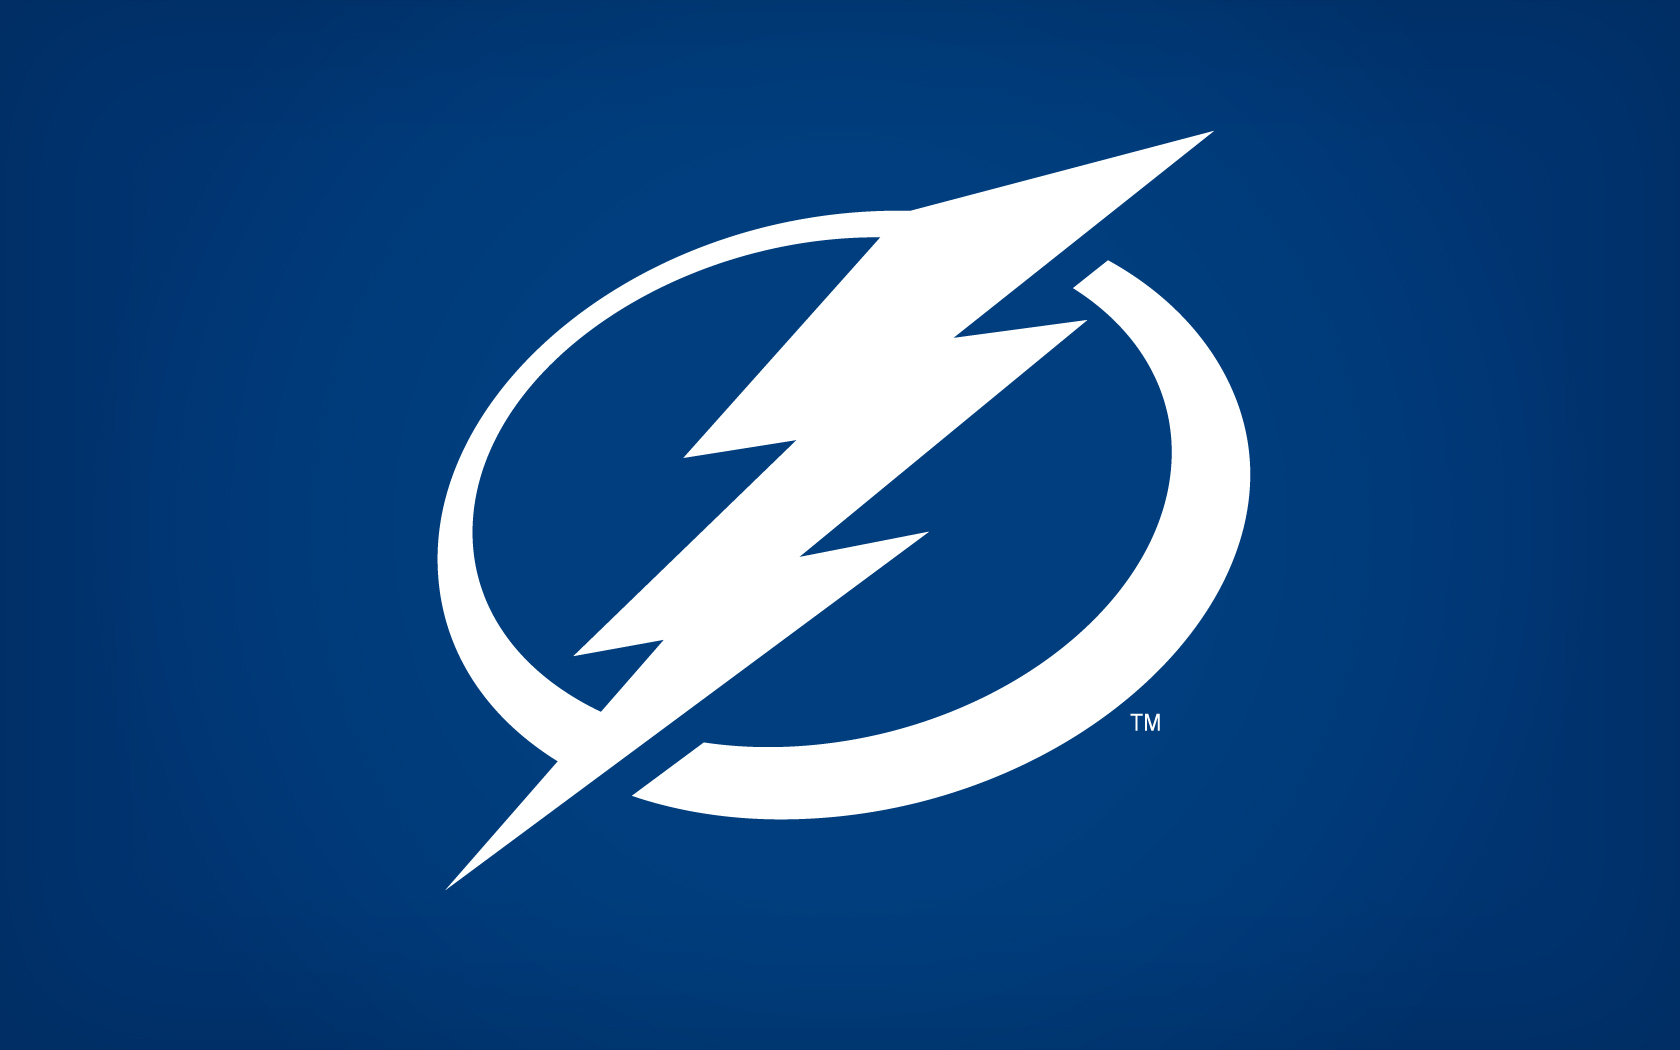 TBL Logo Wallpaper   Tampa Bay Lightning Wallpaper 28452465 1680x1050